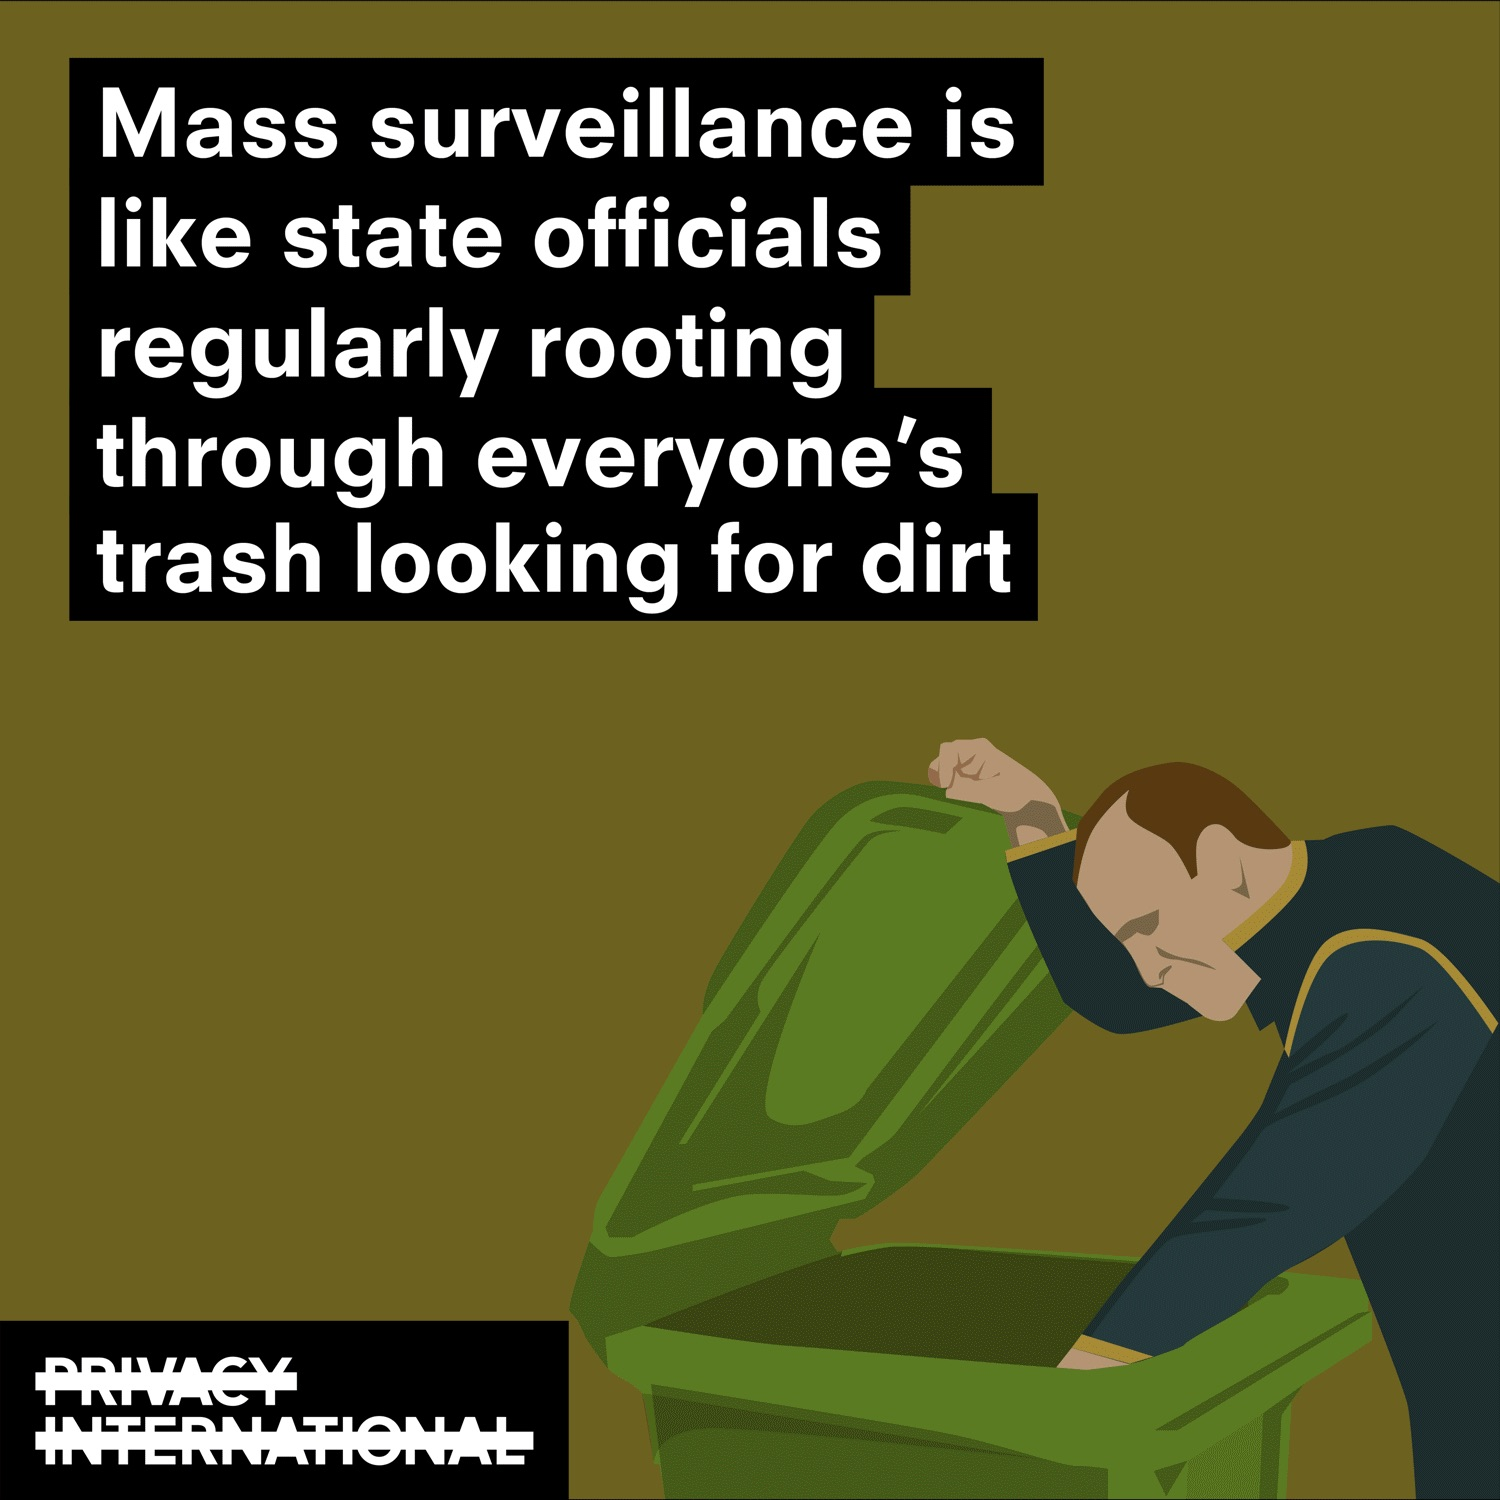 mass surveillance is look state officials rooting through your bins